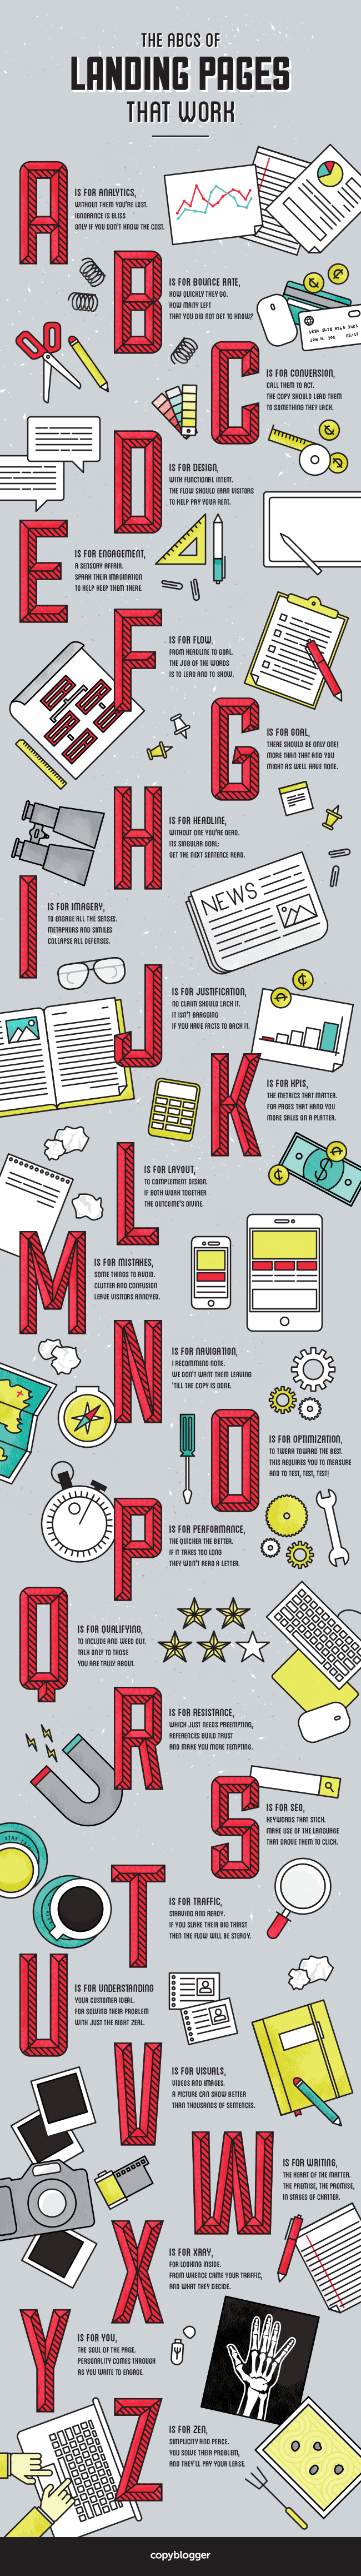 Infographic: The ABCs of Landing Pages That Work